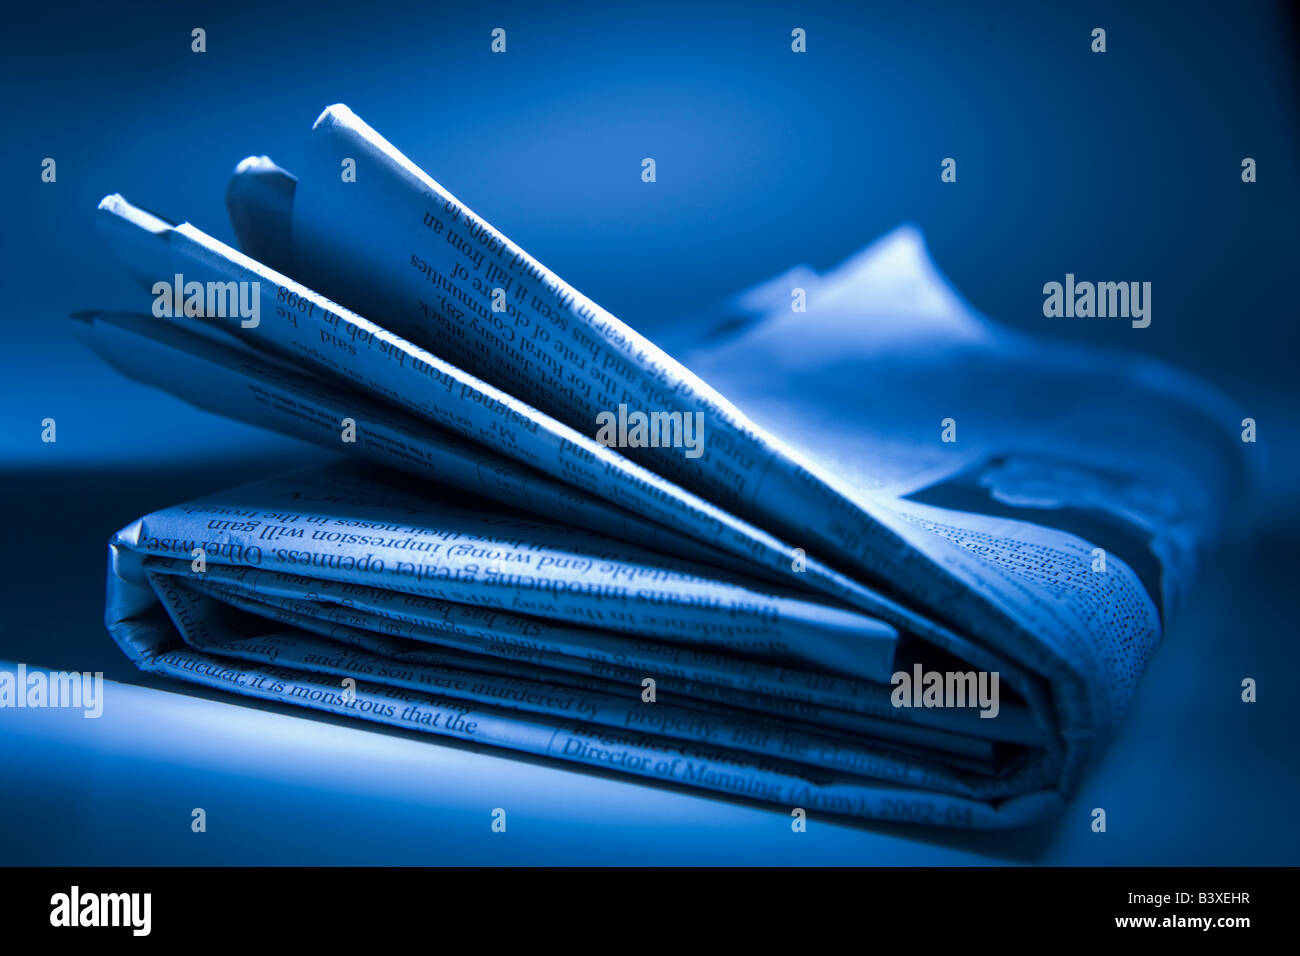 Folded Newspaper - Stock Image